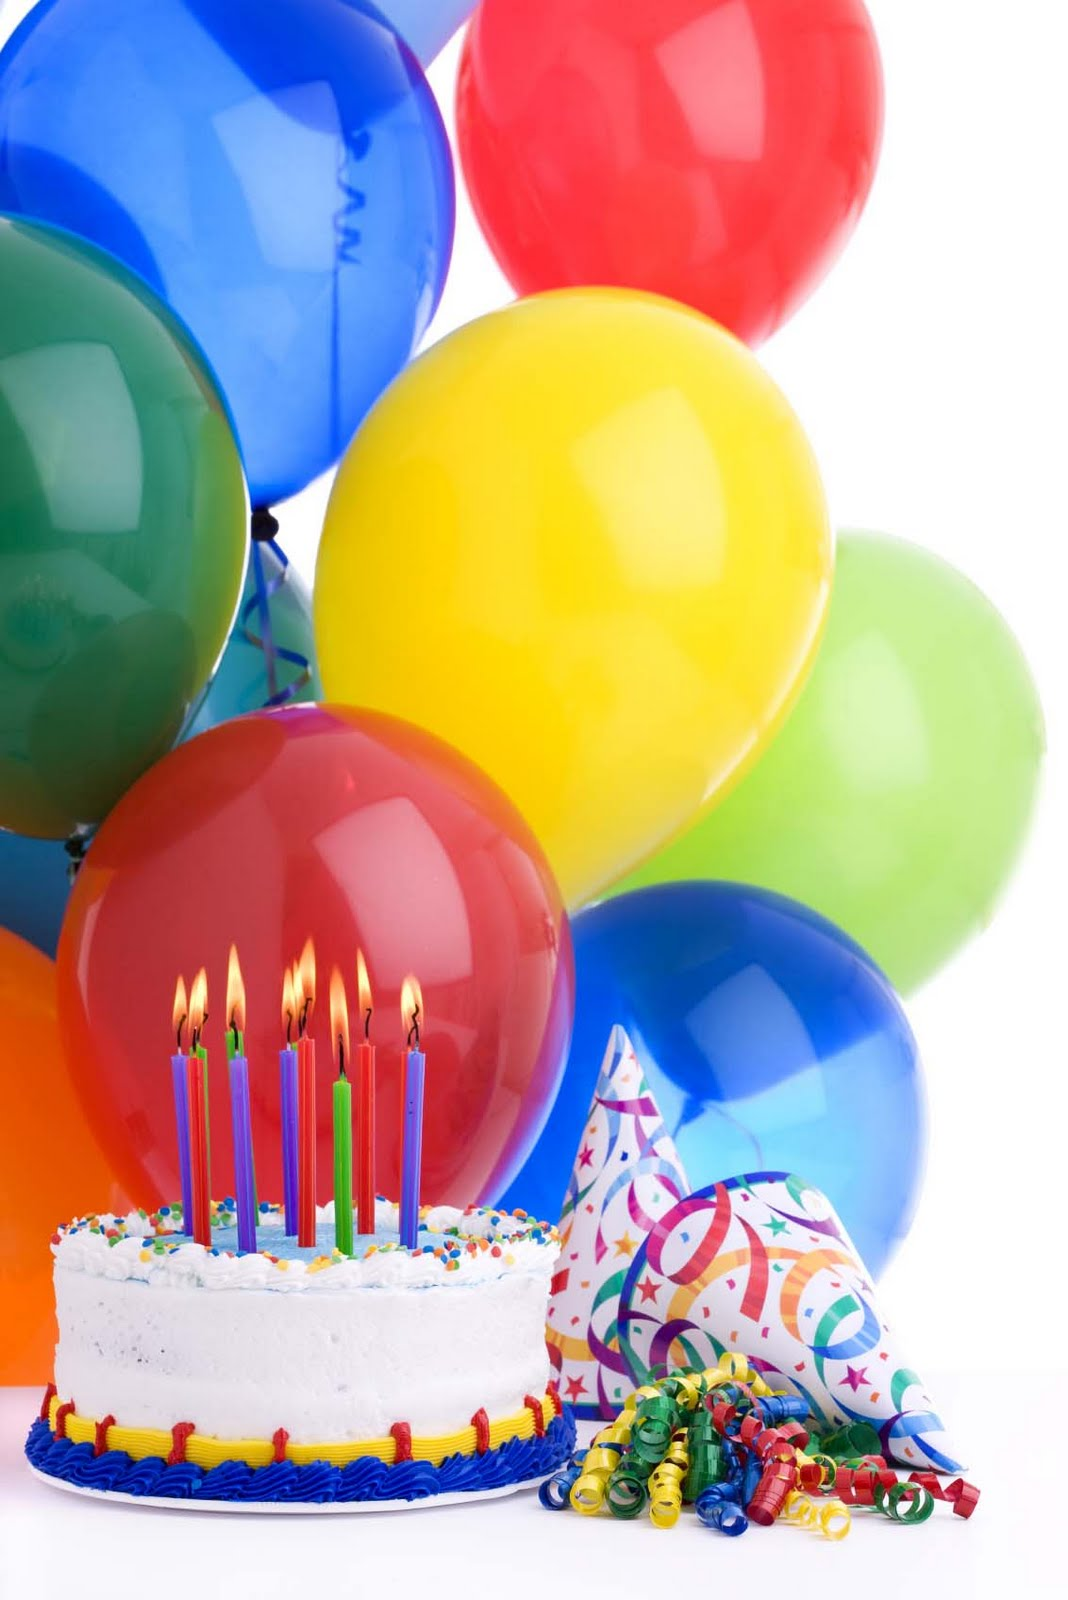 Images Of Birthday Cake And Balloons : Finding Martin...: You Are Invited To A Birthday Party!